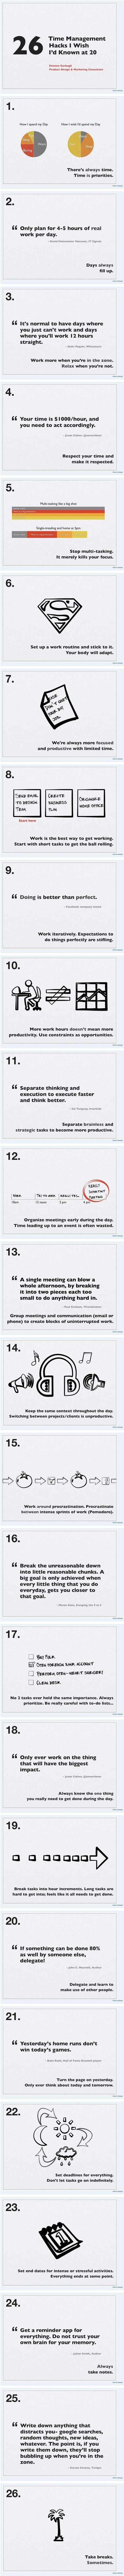 26 Time Management And Productivity Hacks: